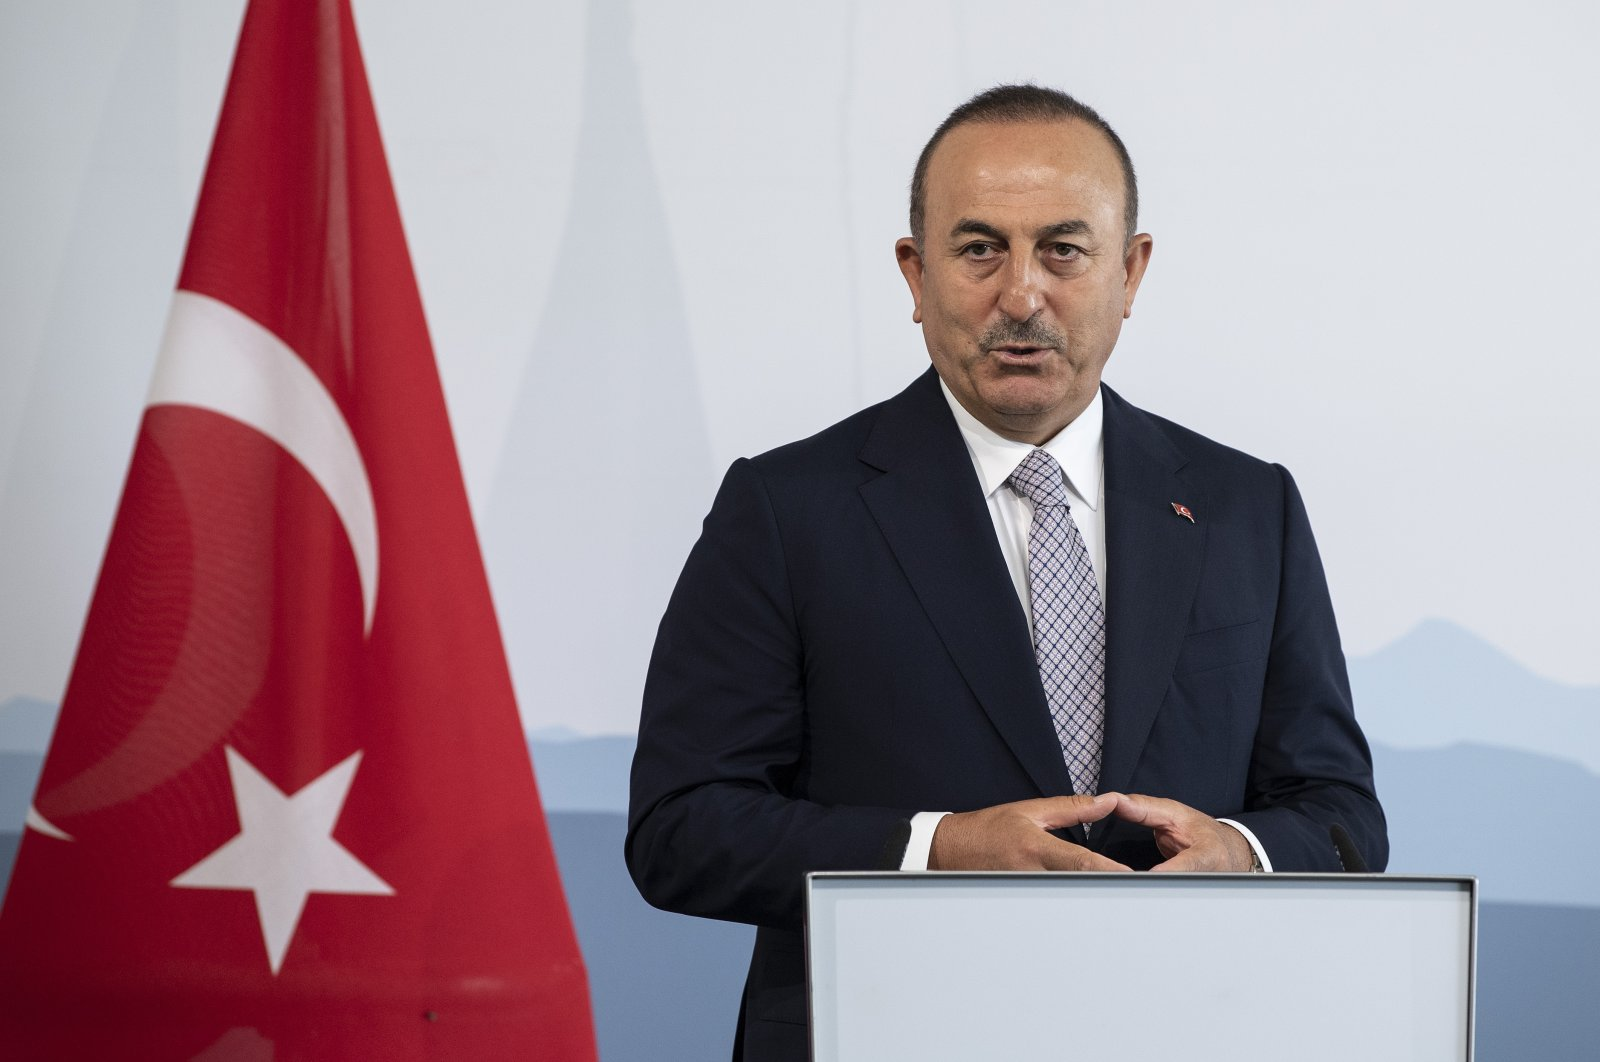 Mevlüt Çavuşoğlu, foreign minister of Turkey, addresses the media during a joint news conference with Swiss Federal Councilor Ignazio Cassis as part of an official visit in Bern, Switzerland, Aug. 14, 2020. (AP Photo)